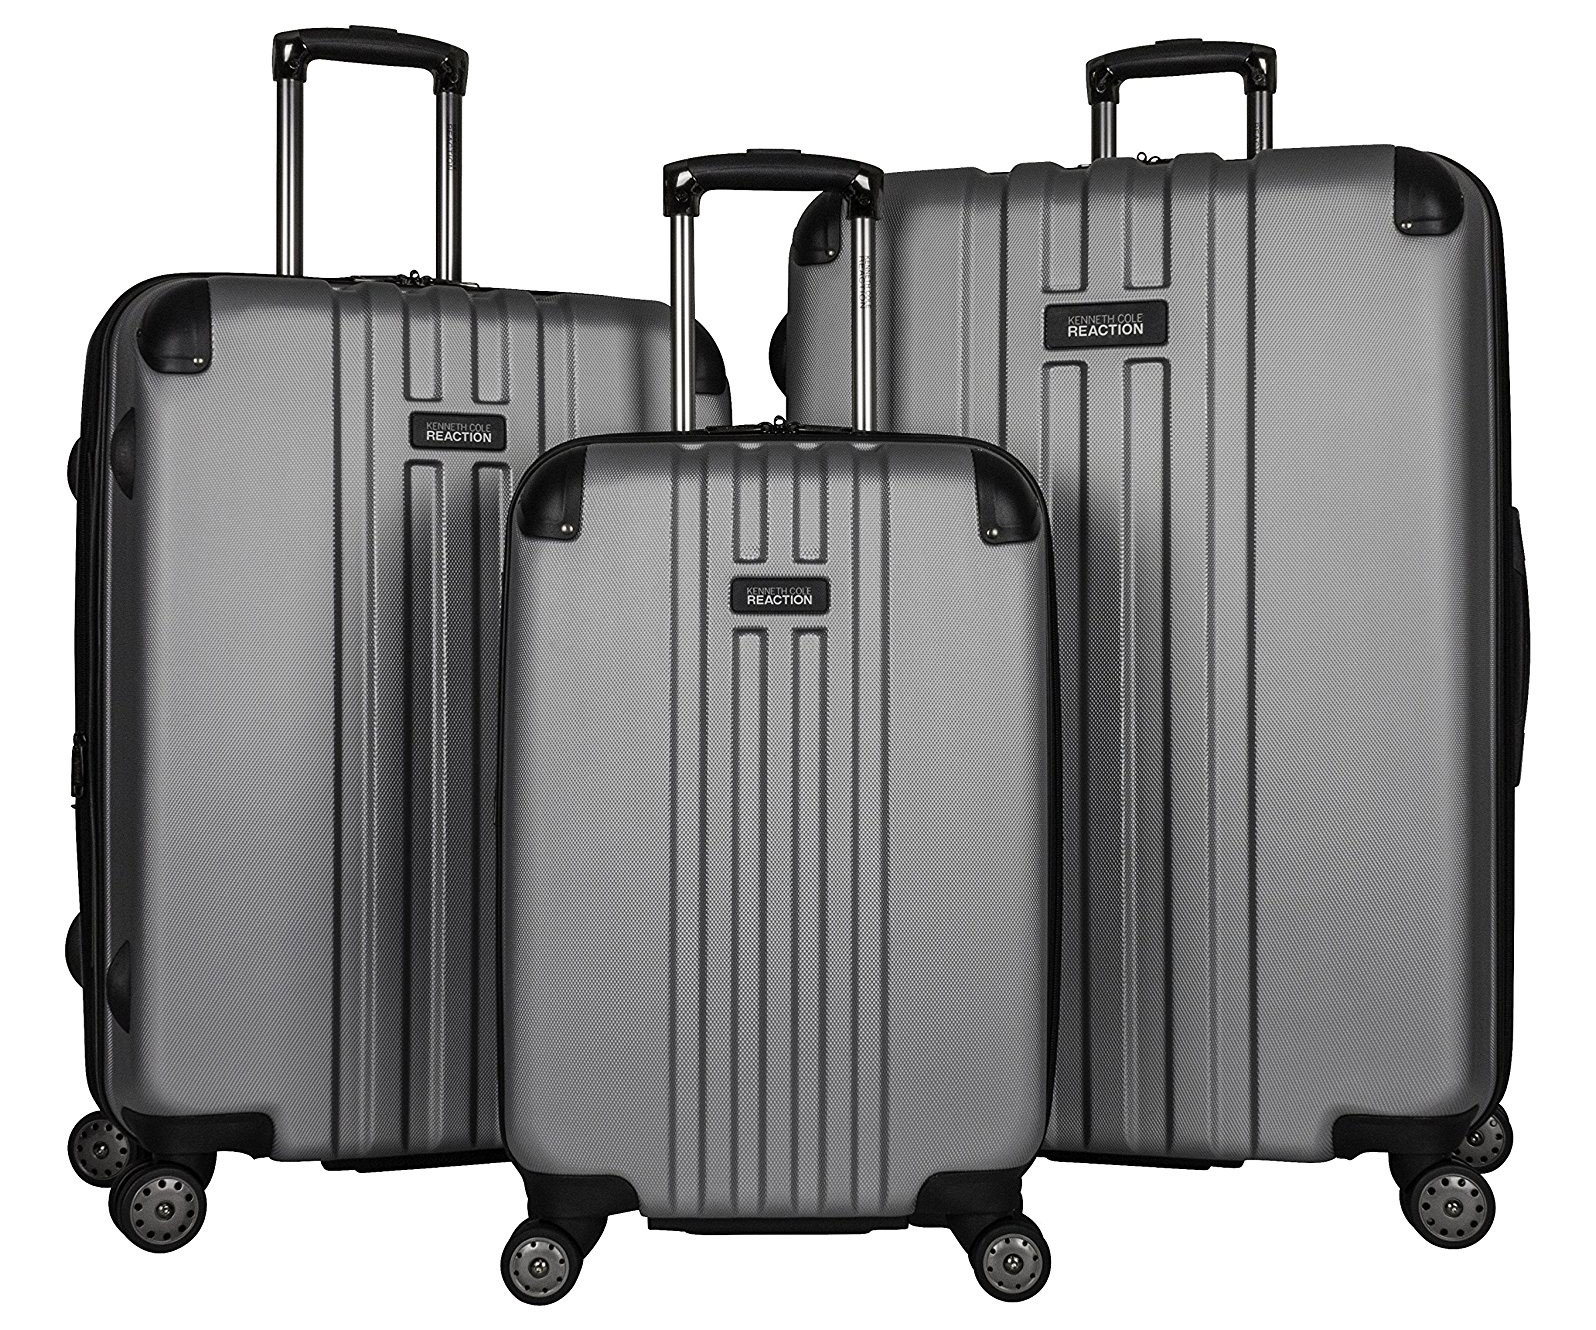 Kenneth Cole Reaction Reverb 3-Piece Luggage Set